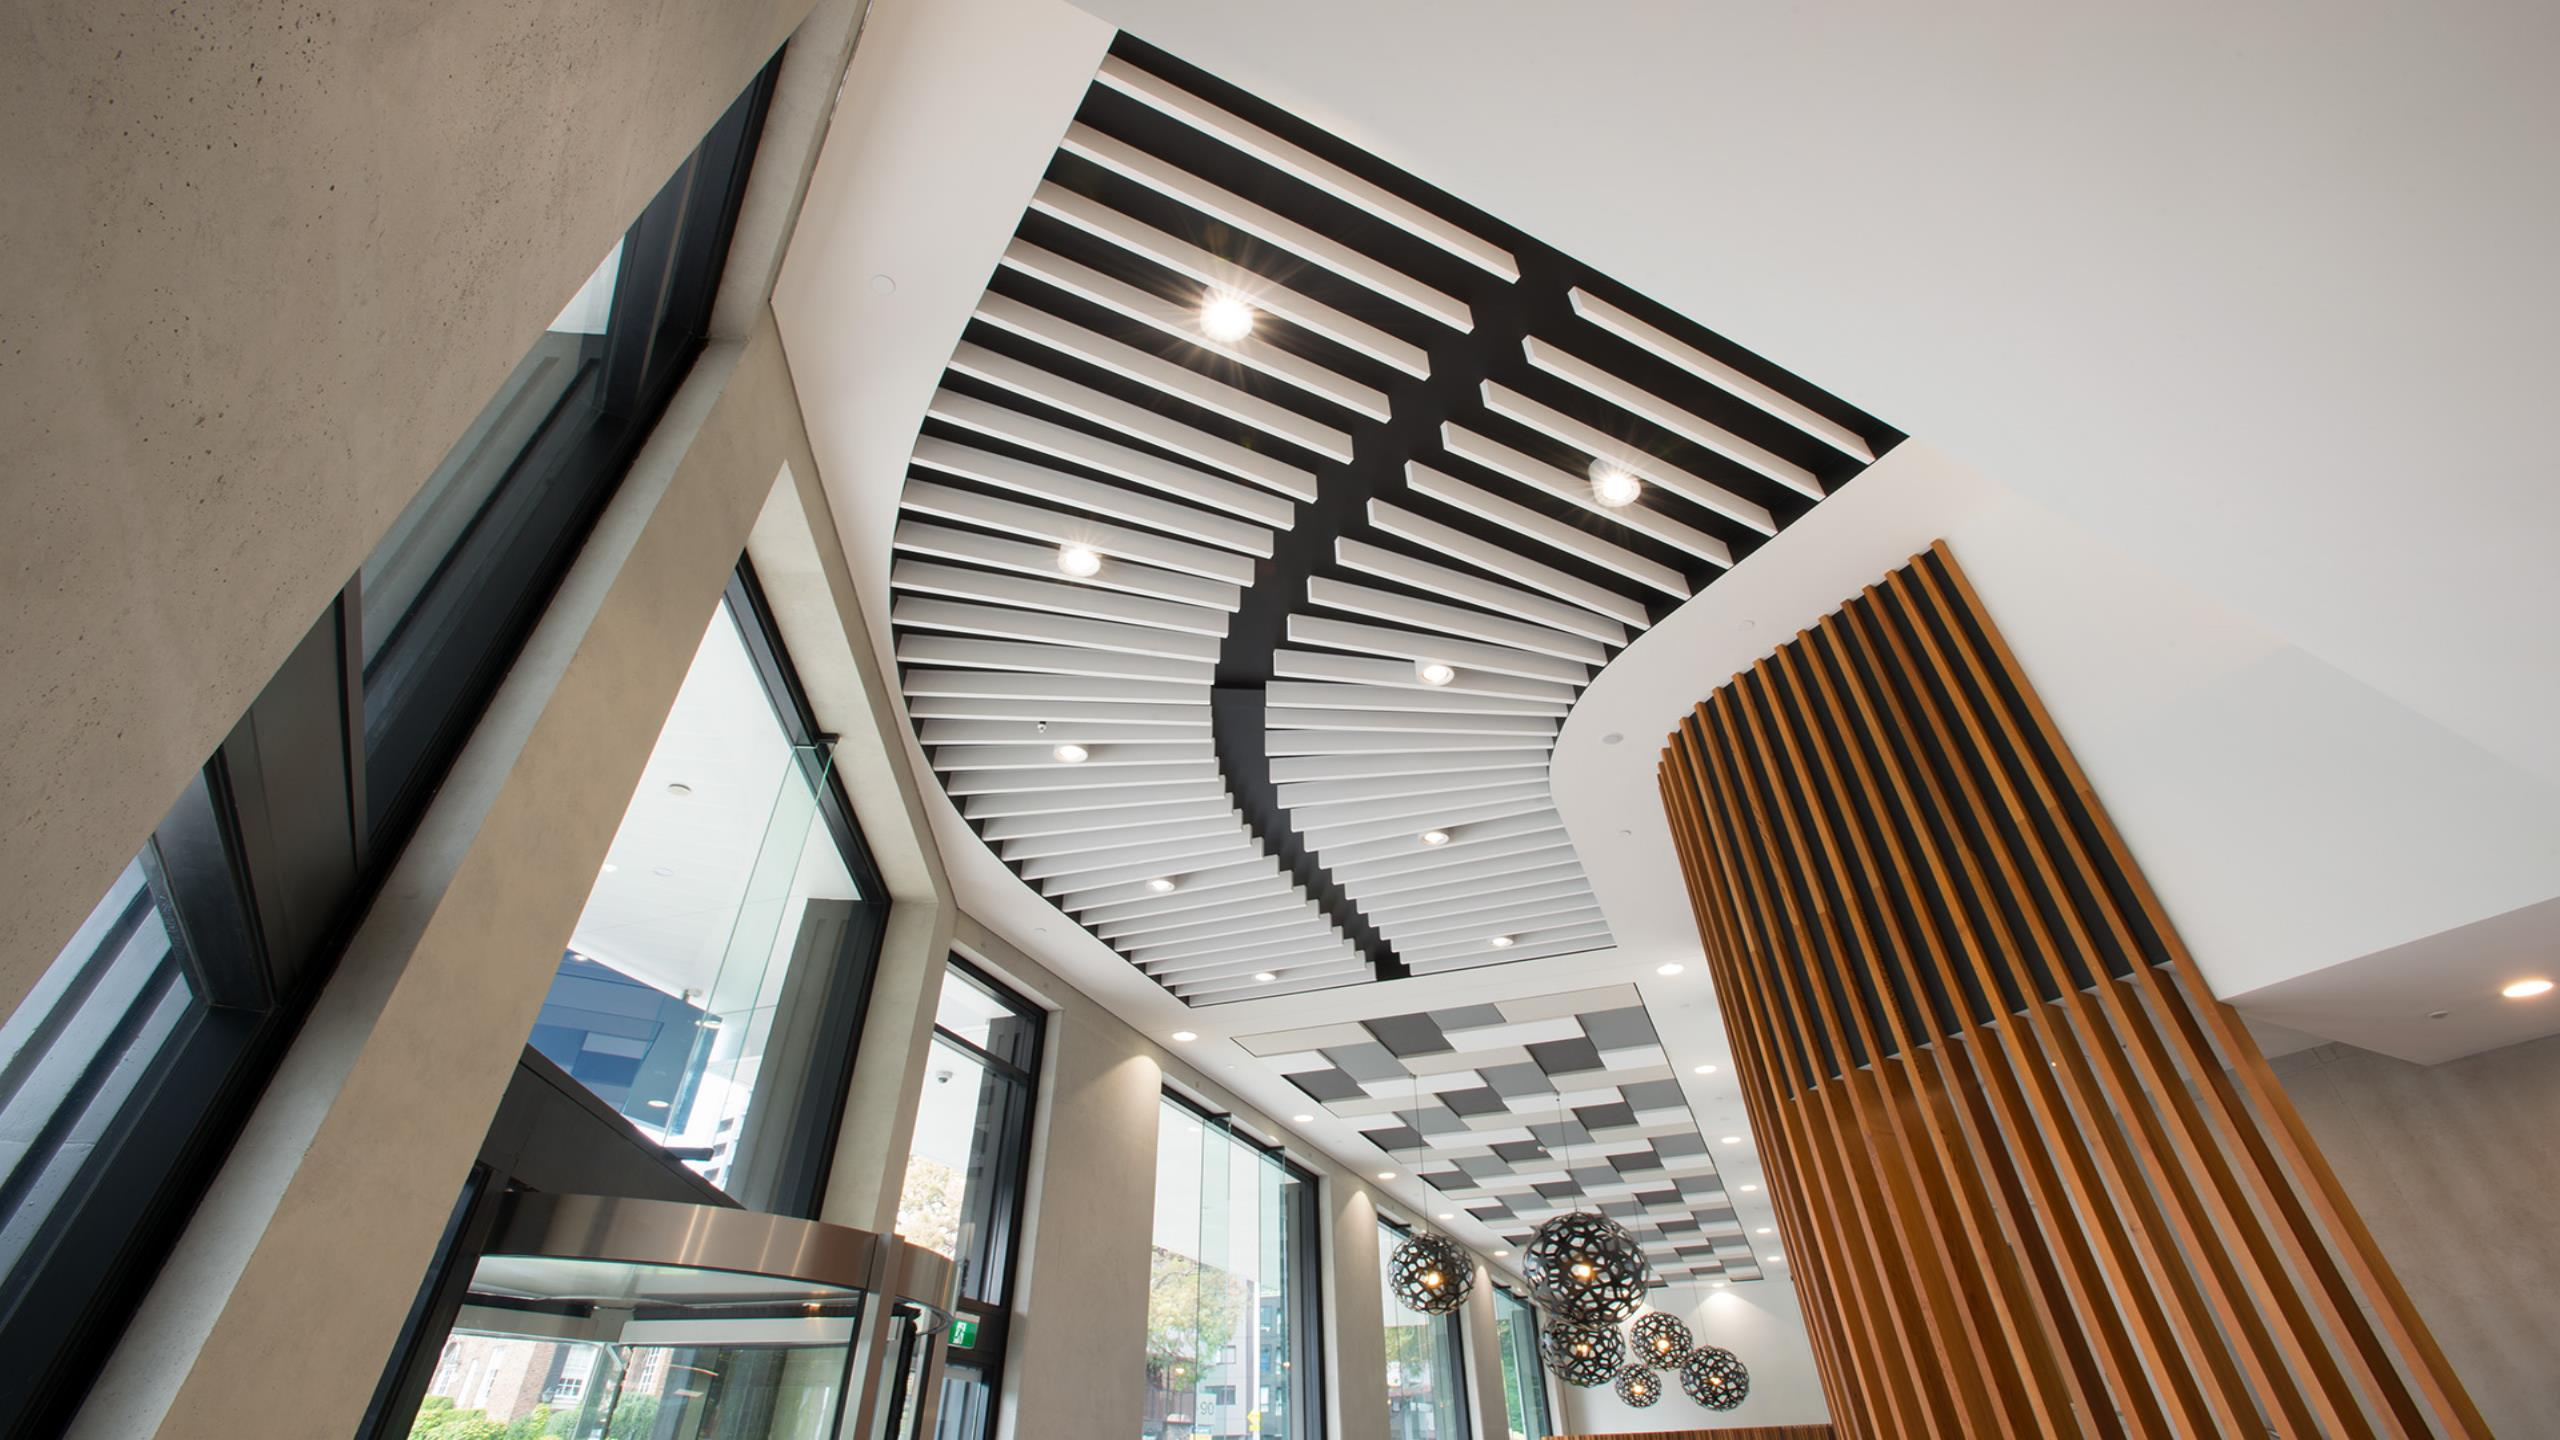 55 Symonds St Unilodge- Triton Baffle Beam